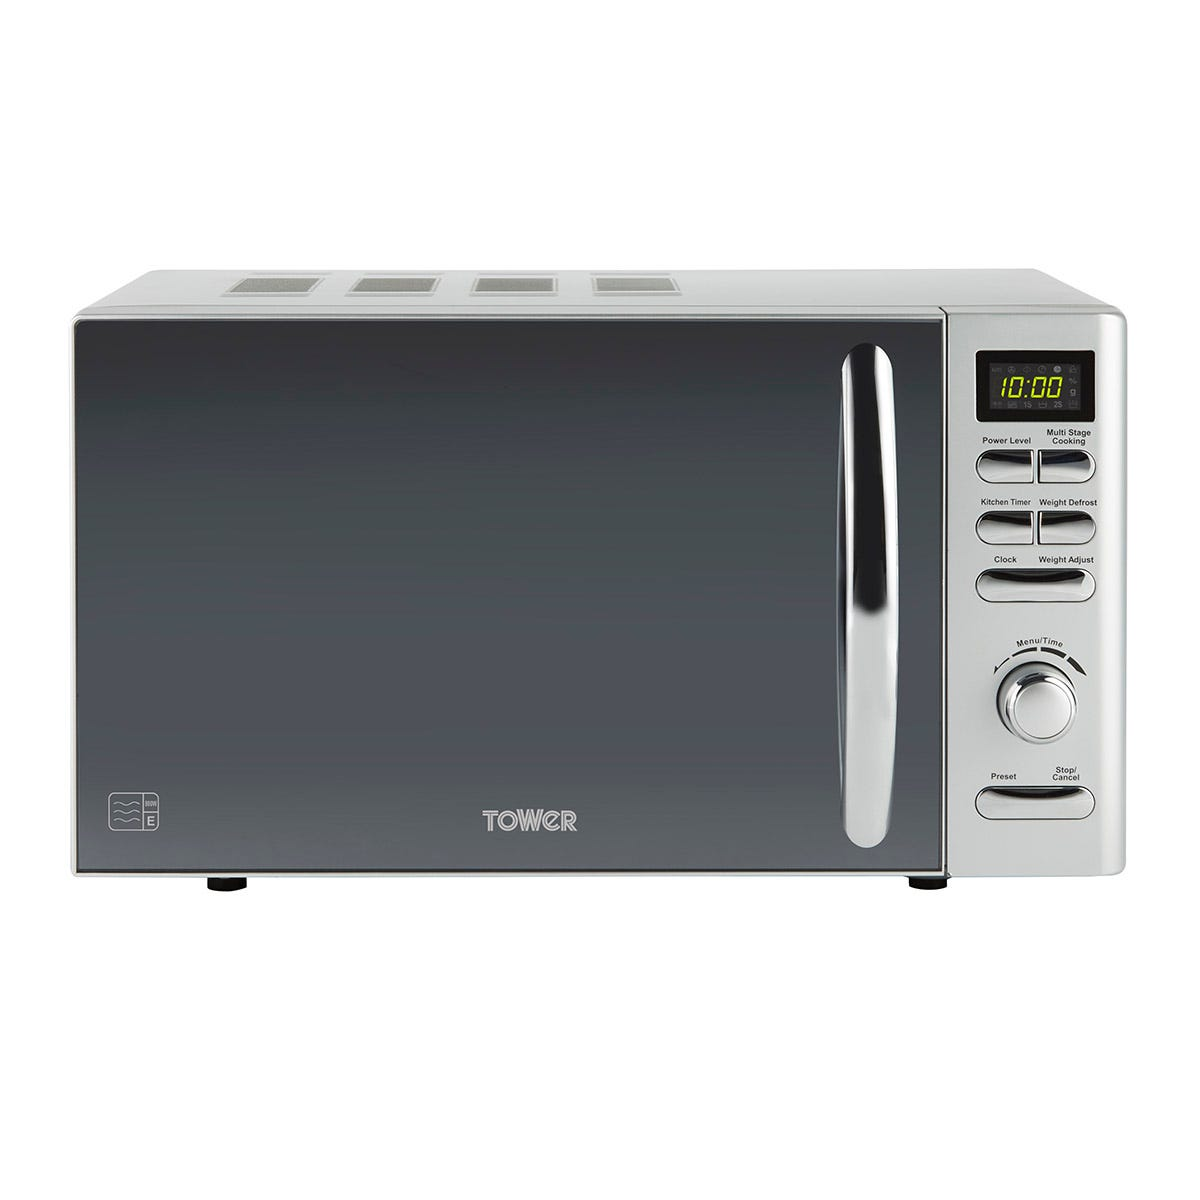 Tower T24019S Infinity 800W 20L Digital Microwave - Silver